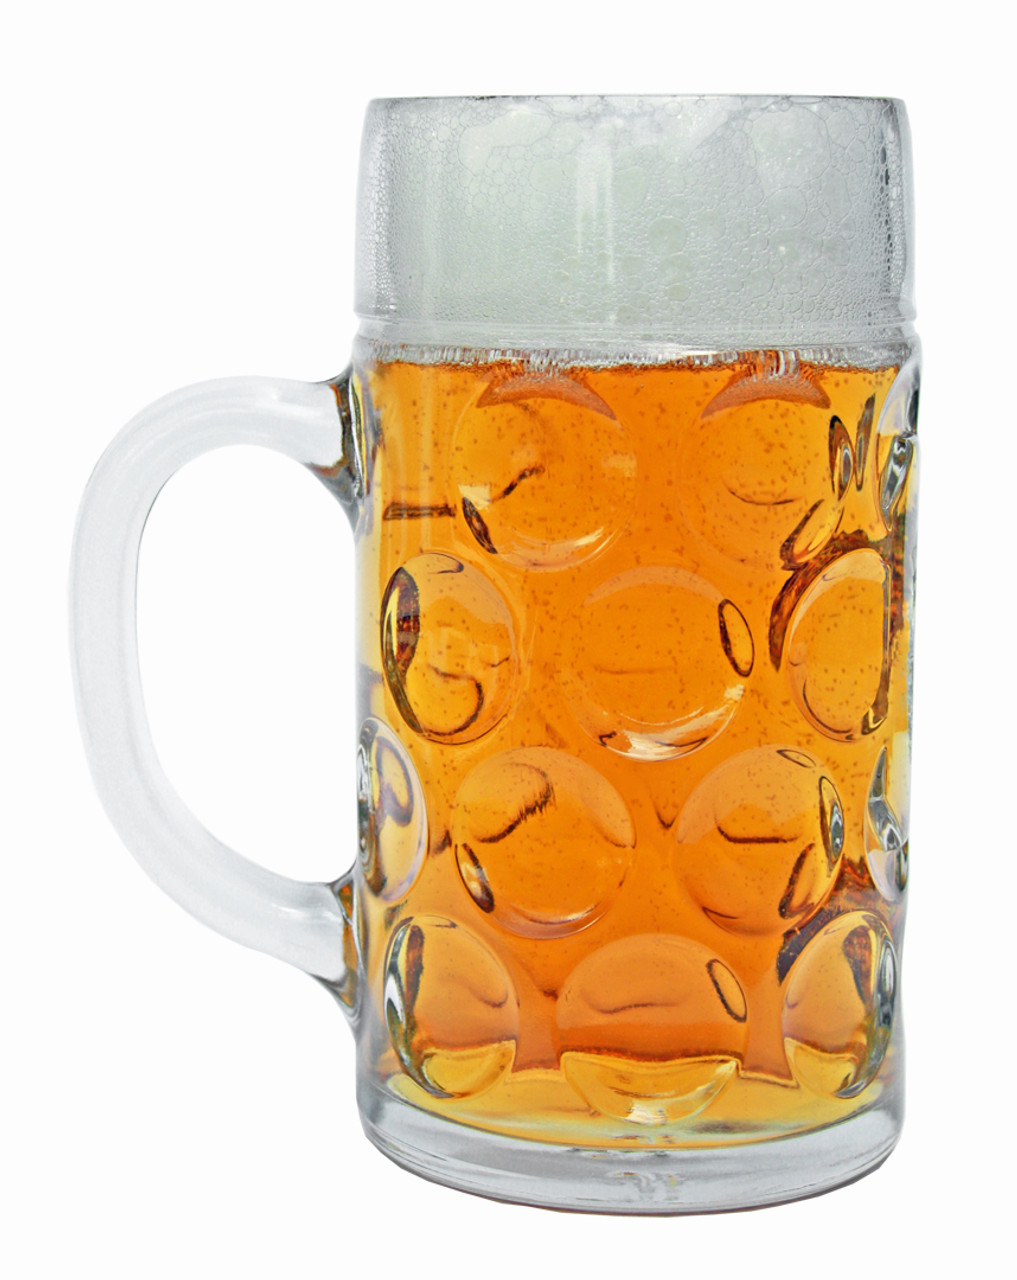 Personalized Traditional Oktoberfest Glass Beer Mug 1 Liter with Berlin Crest